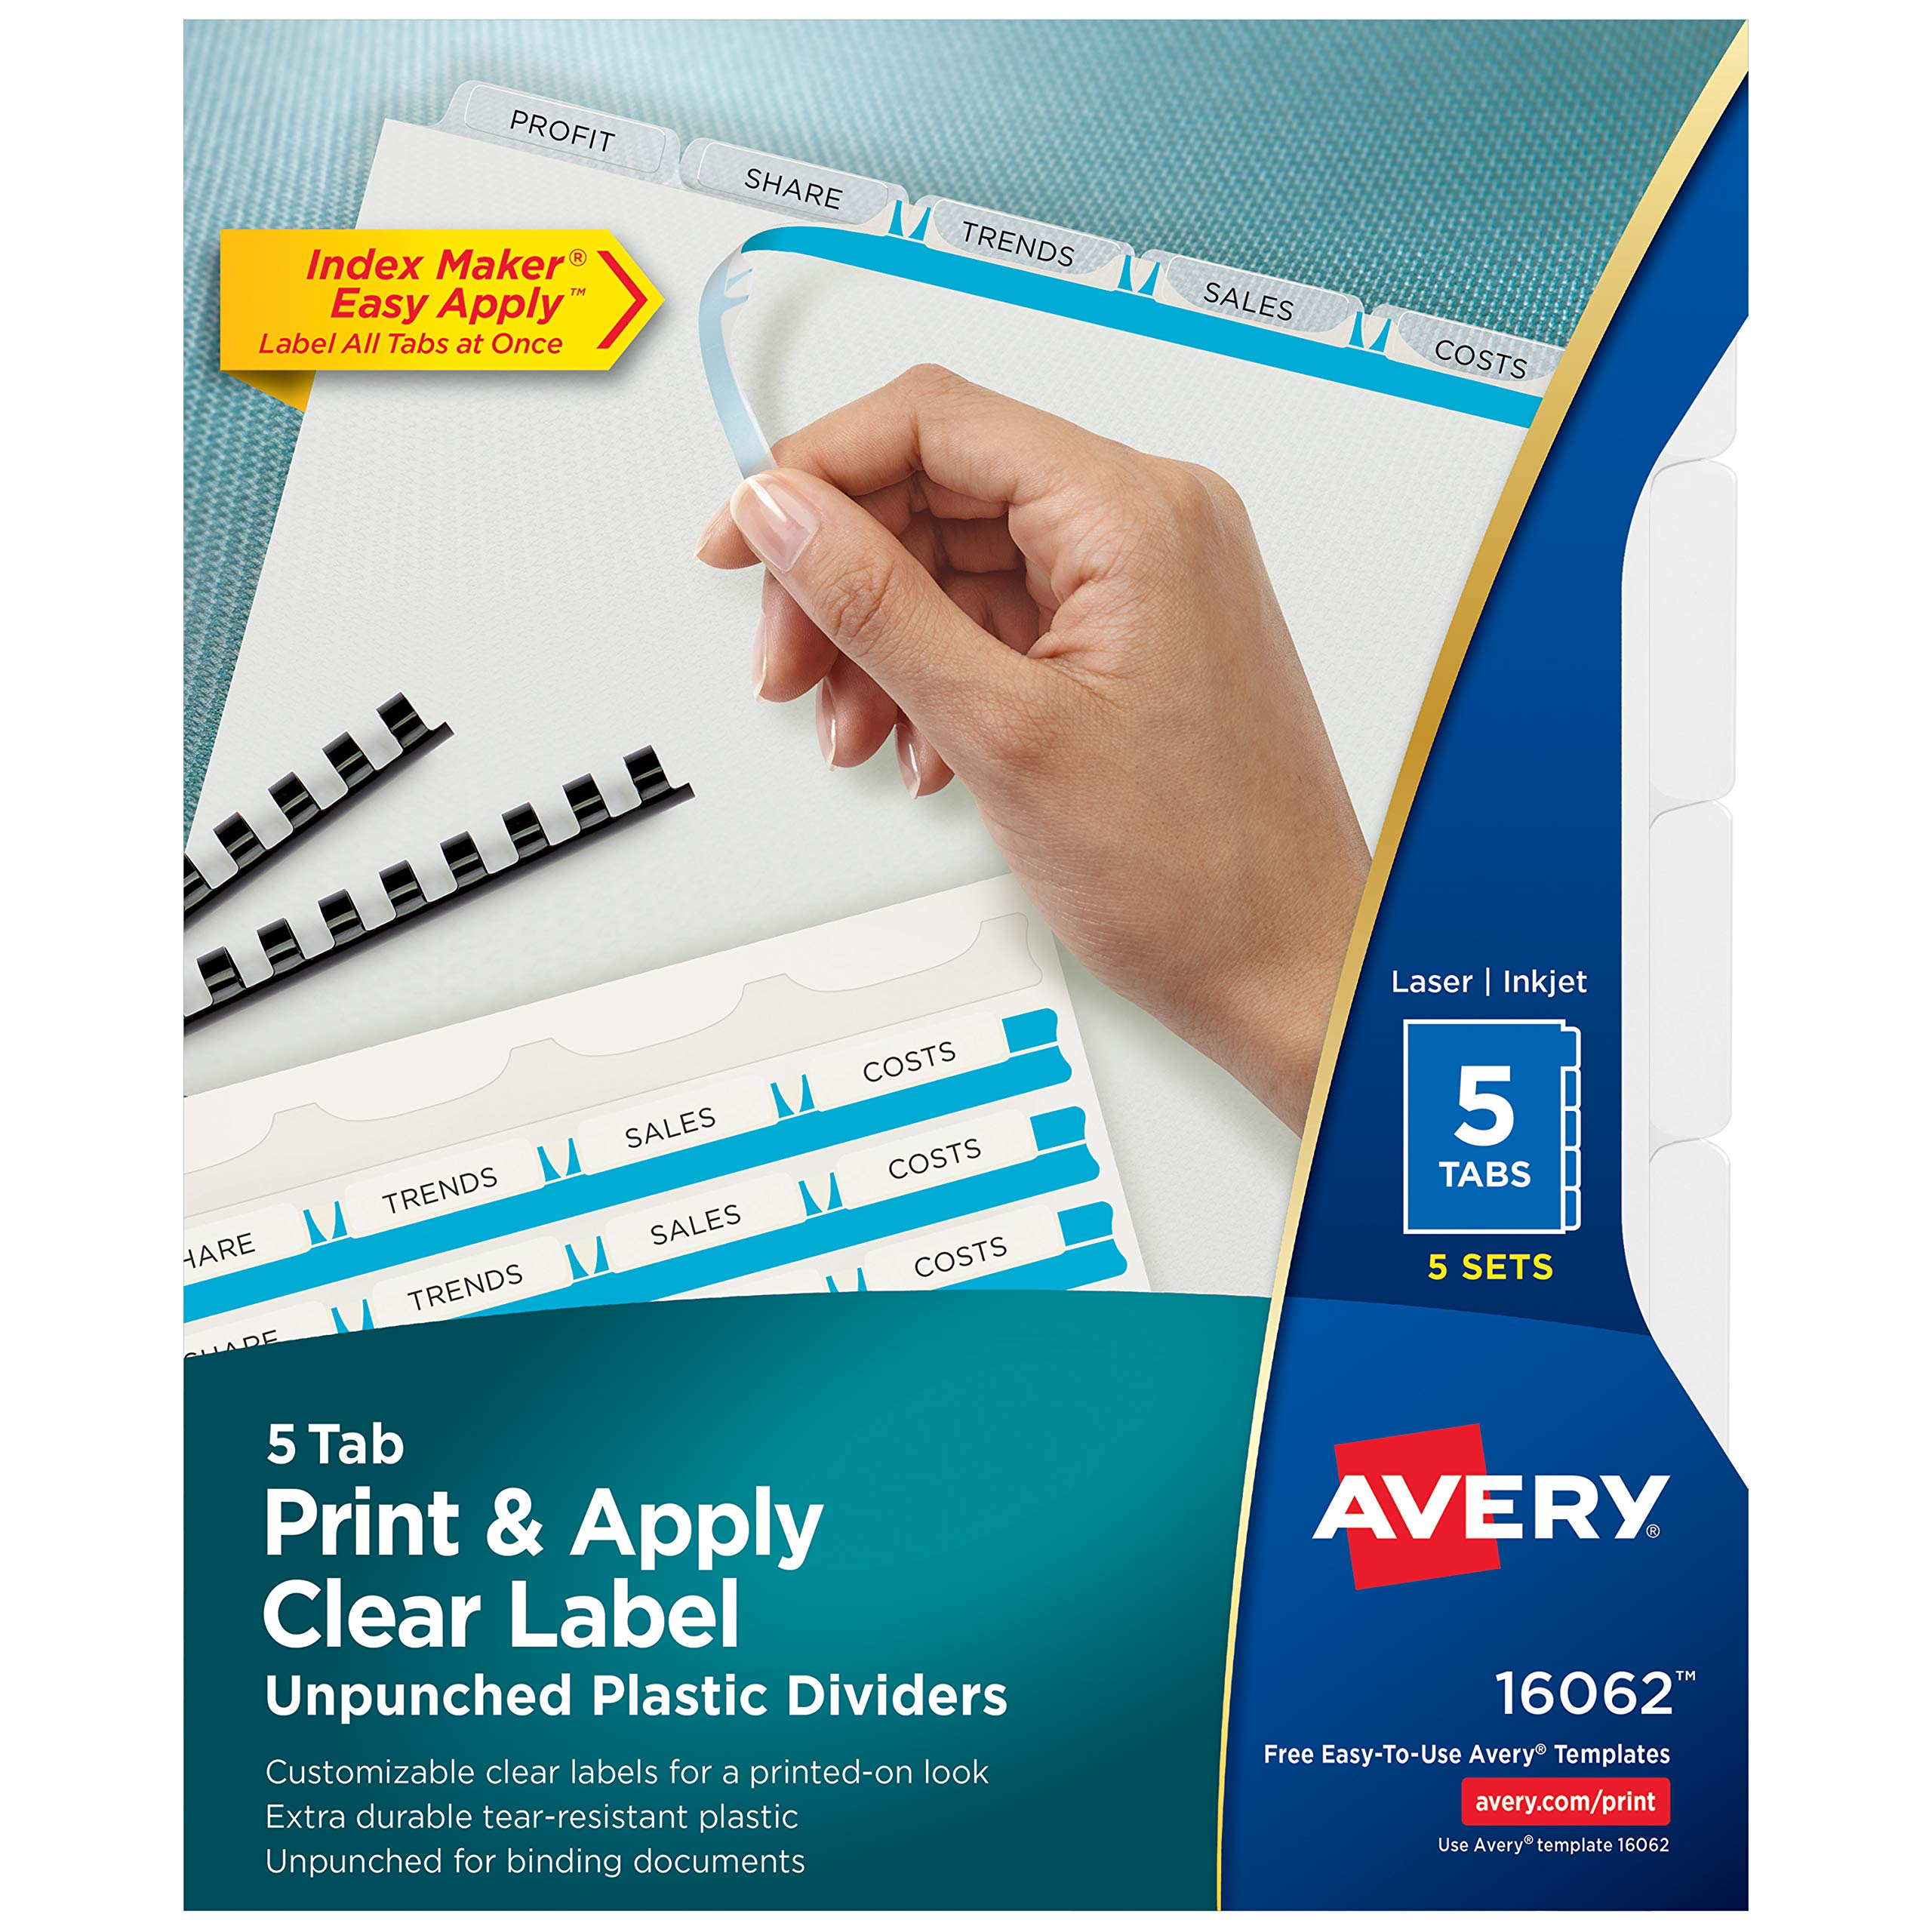 Avery 5-Tab Unpunched Plastic Dividers, Easy Print & Apply Clear Label Strip, Index Maker, 5 Sets (16062) by AVERY